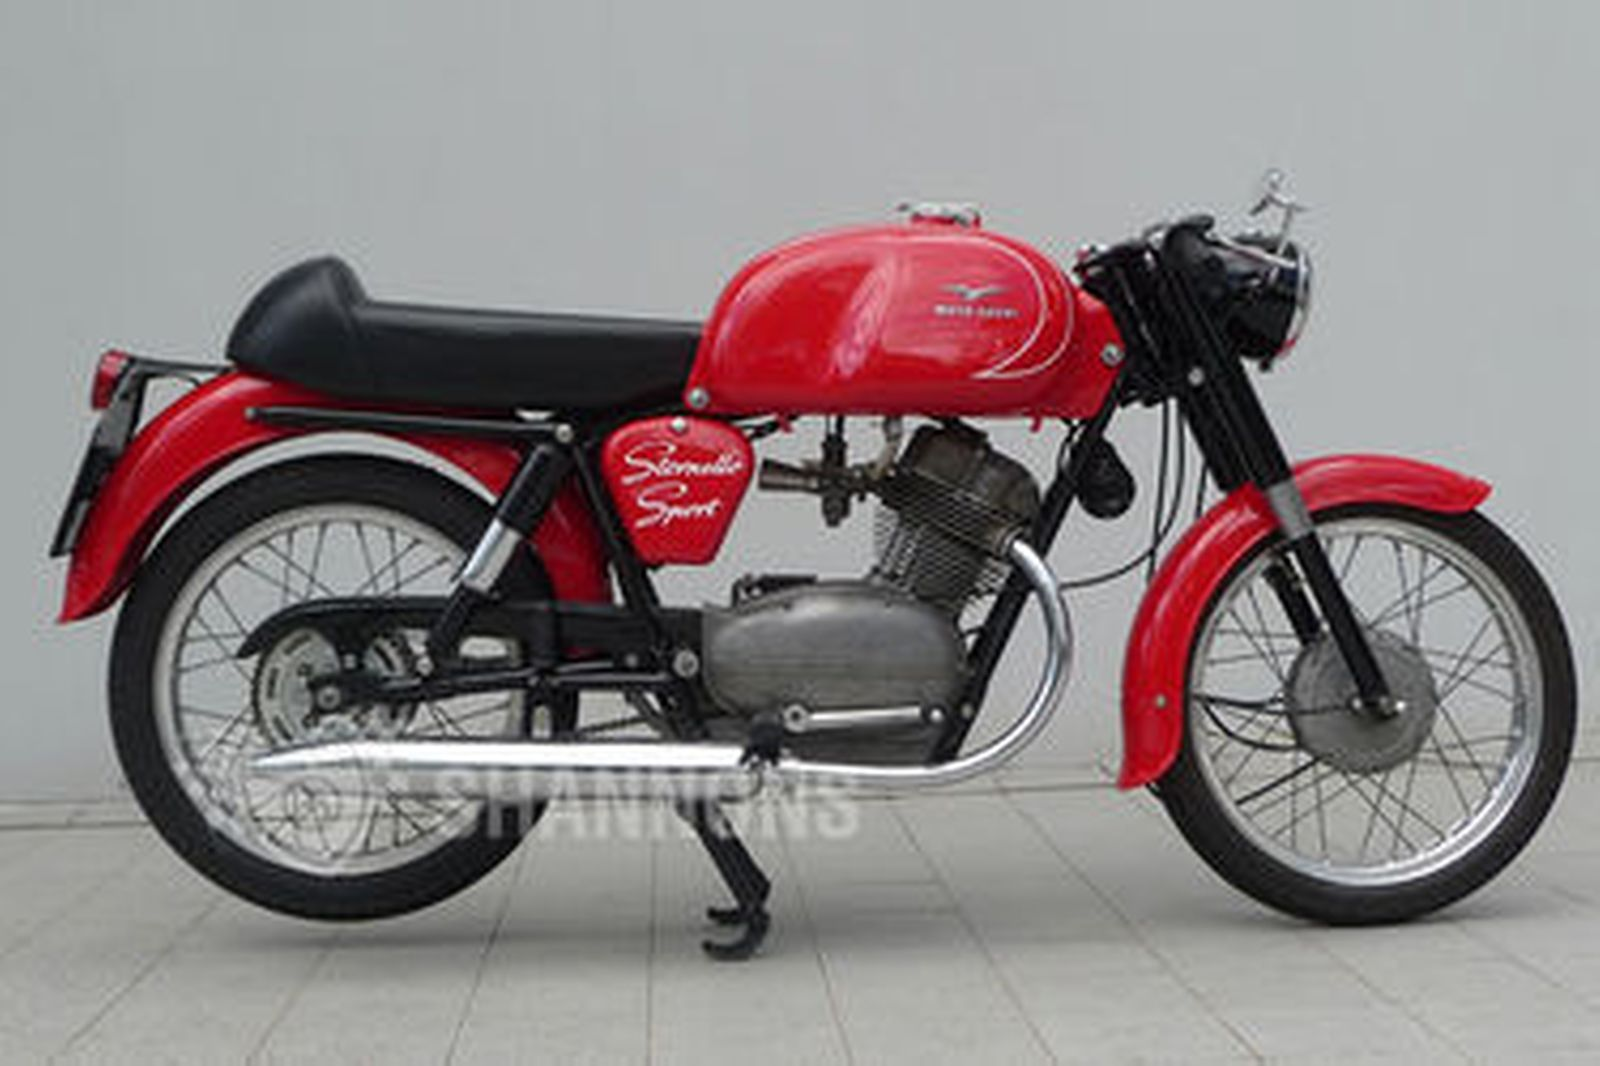 sold moto guzzi 125cc stornello sport motorcycle auctions lot 16 shannons. Black Bedroom Furniture Sets. Home Design Ideas